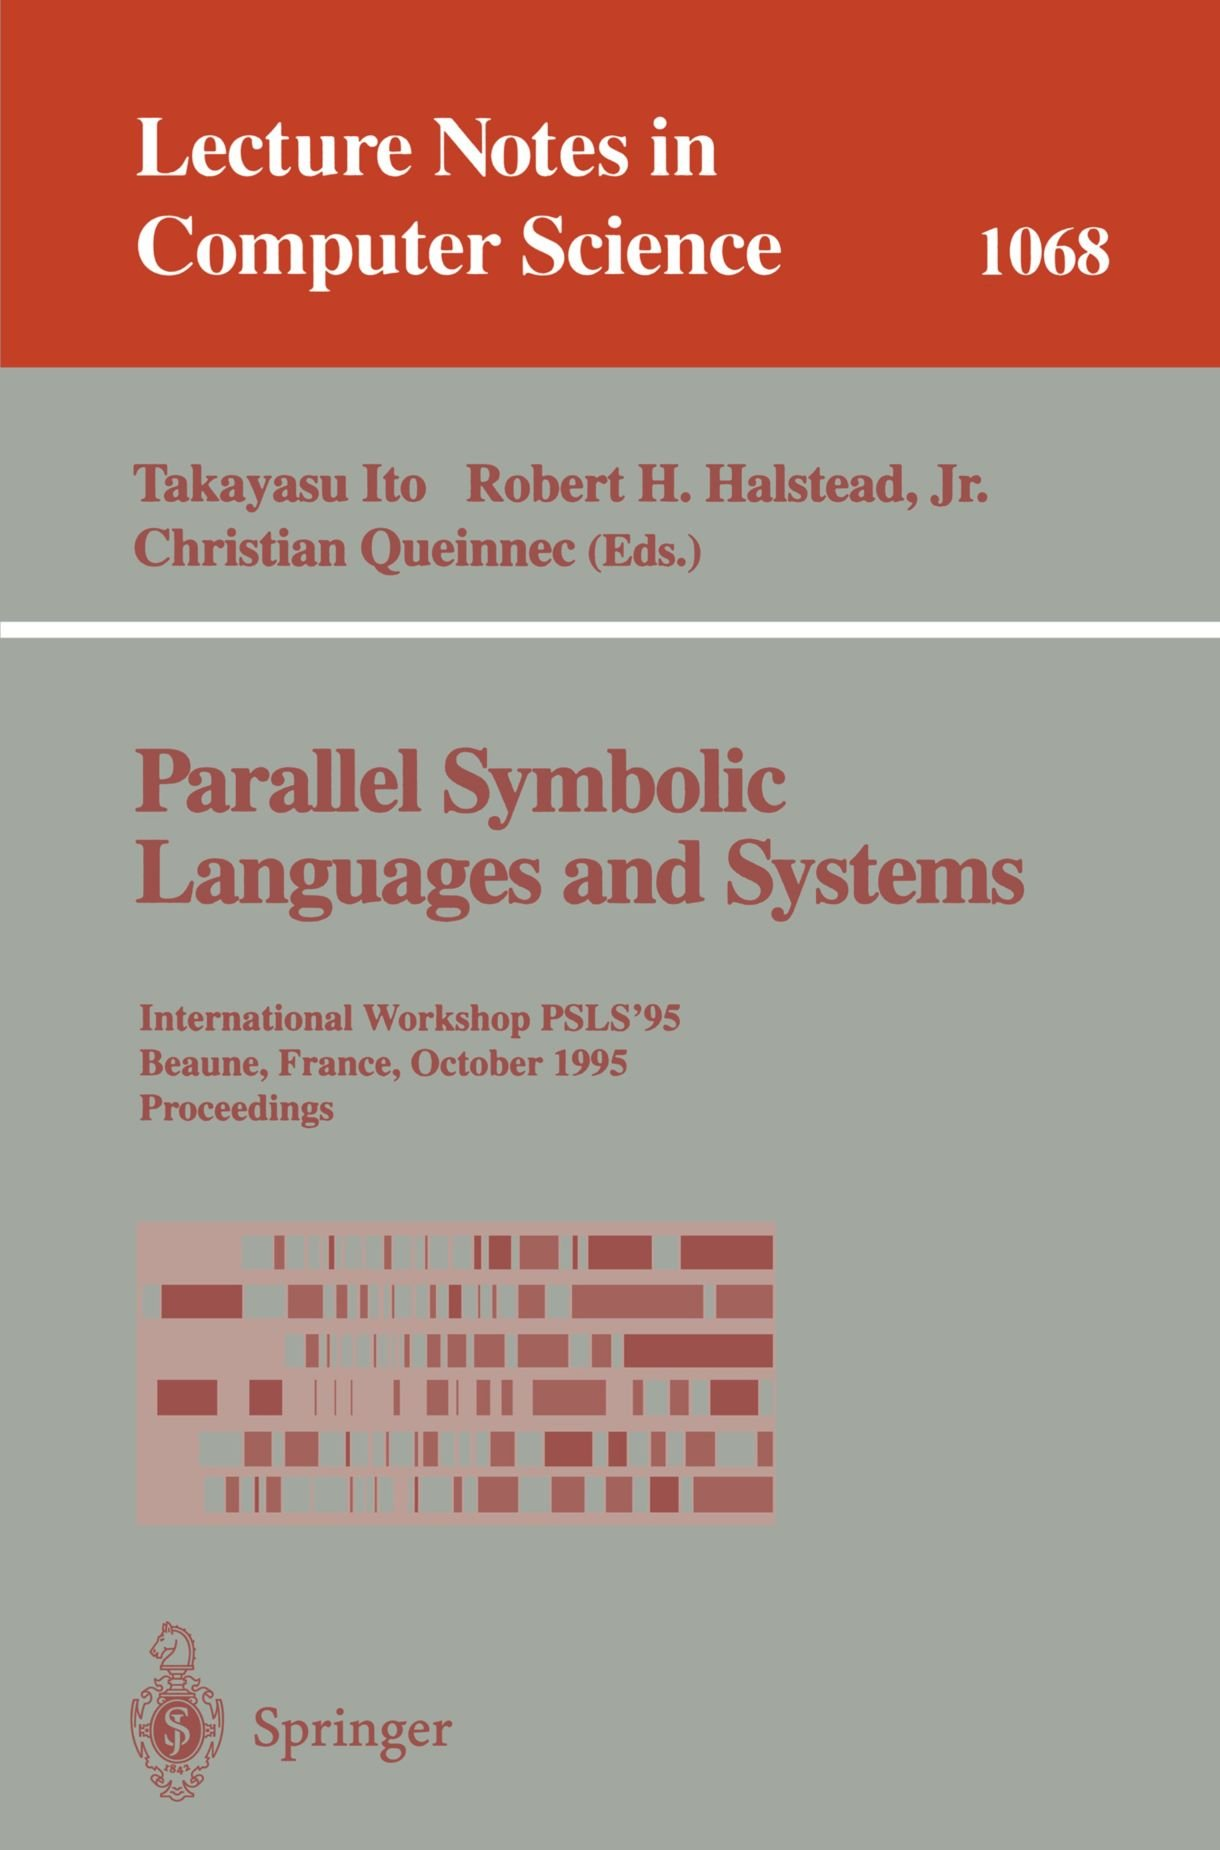 Parallel Symbolic Languages and Systems: International Workshop, PSLS '95, Beaune, France, October (2-4), 1995. Proceedings (Lecture Notes in Computer Science) by Springer